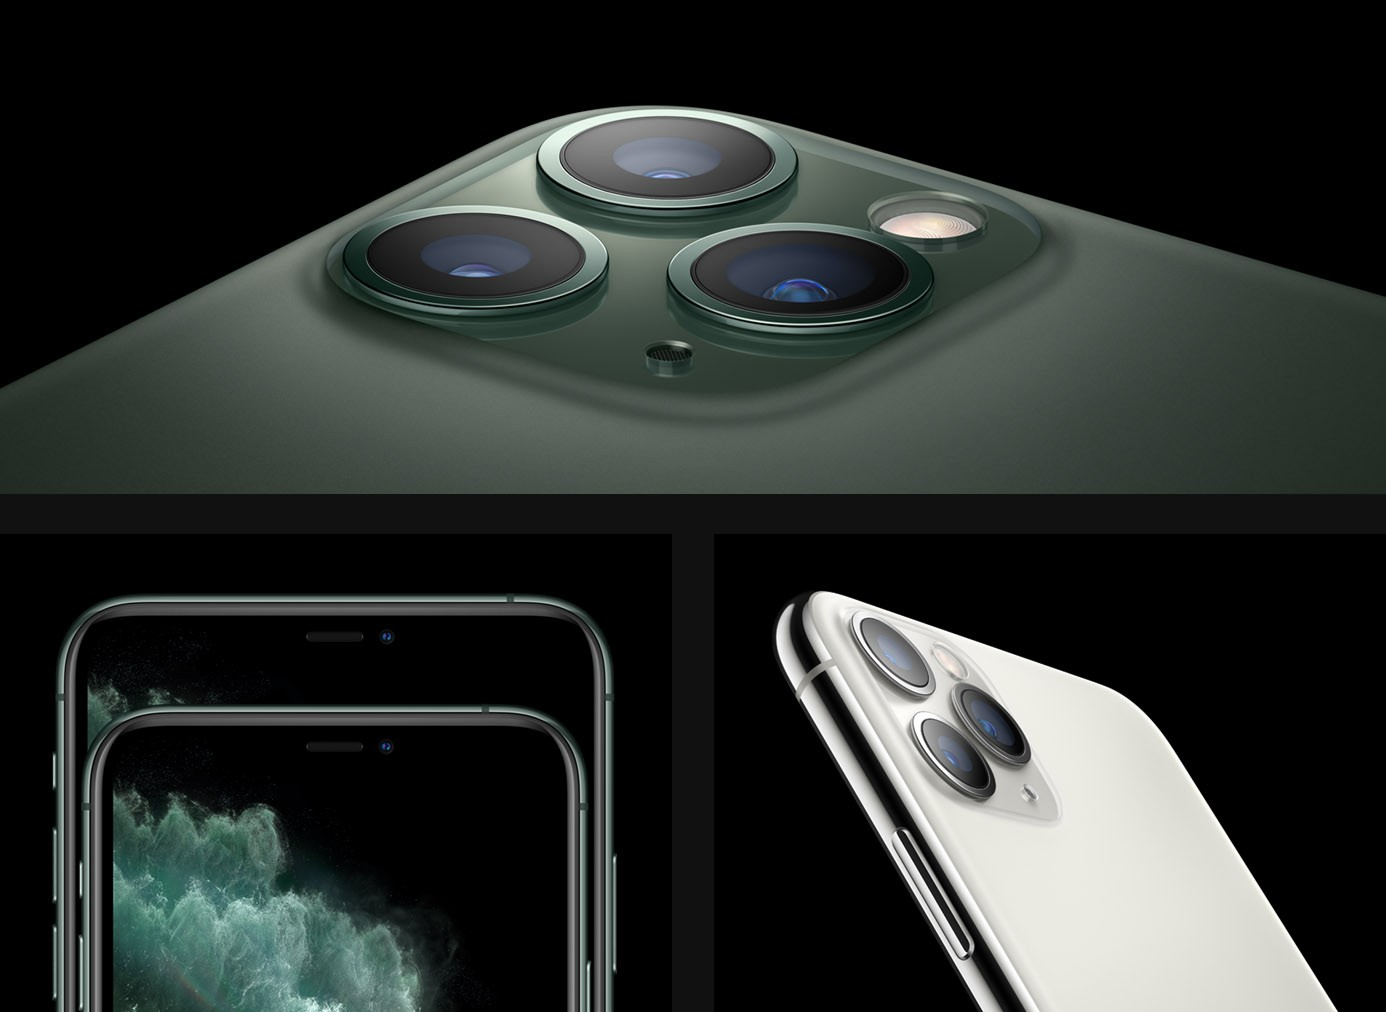 iPhone 11 Pro Design An obsession over details.